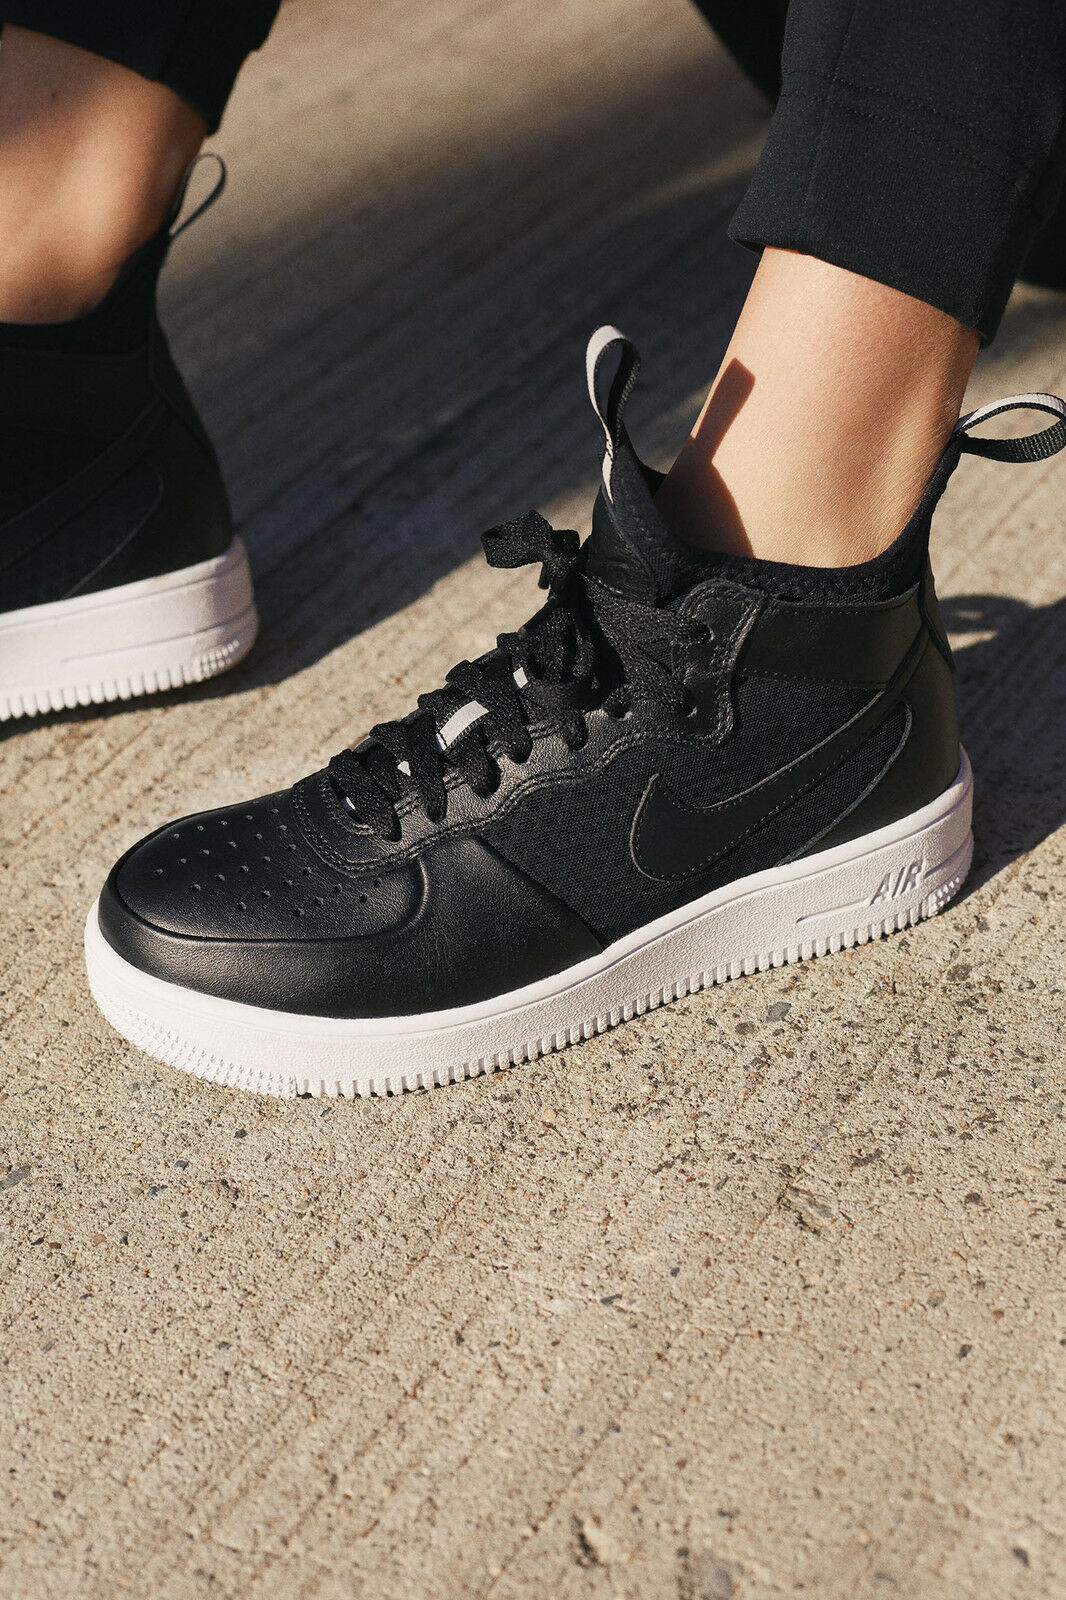 bba6969033c7b ... NIKE AIR FORCE 1 ULTRA MID Women s Shoe - - - Size 12 (864025- ...